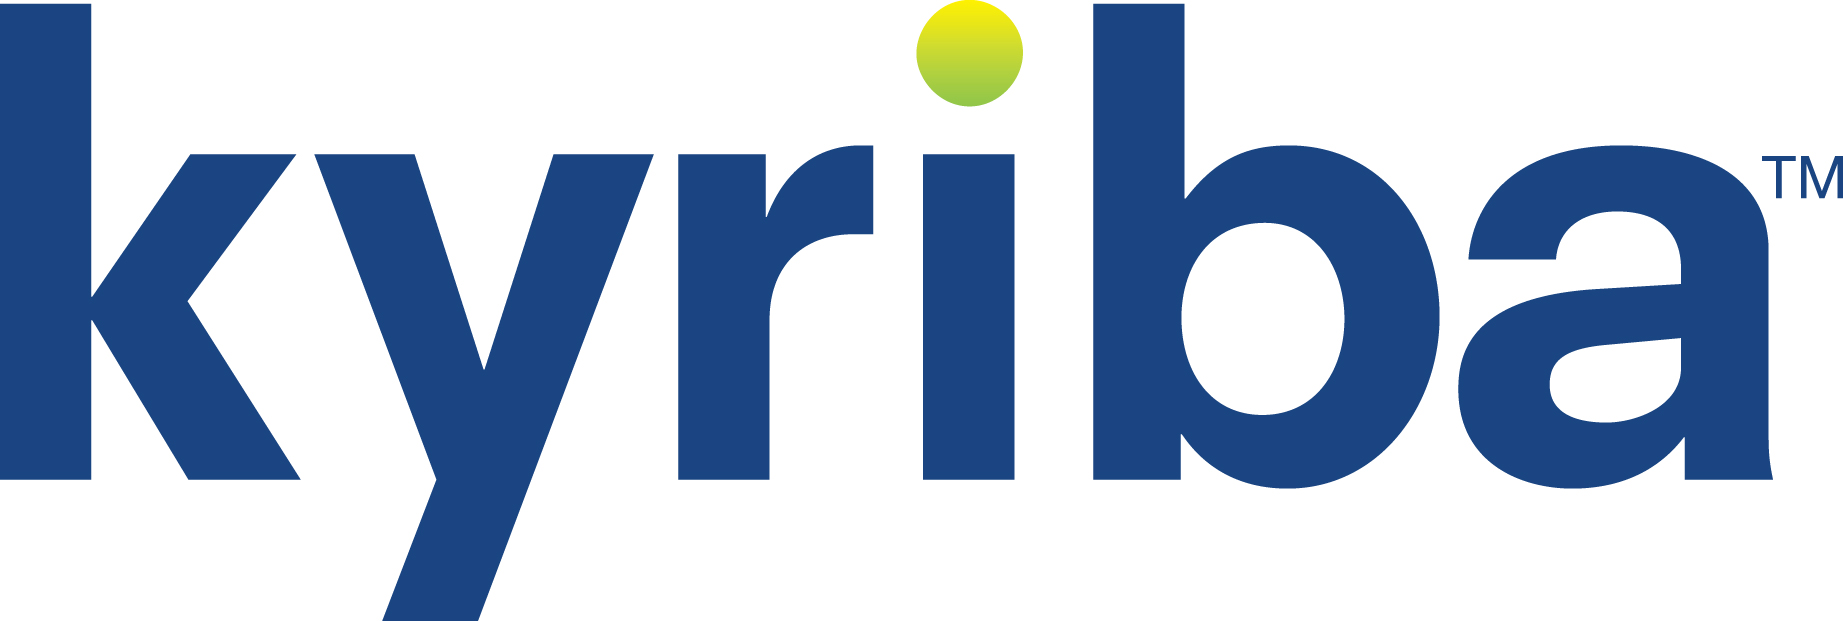 FHL Partners with Kyriba to Deliver Secure Cloud Treasury Solutions